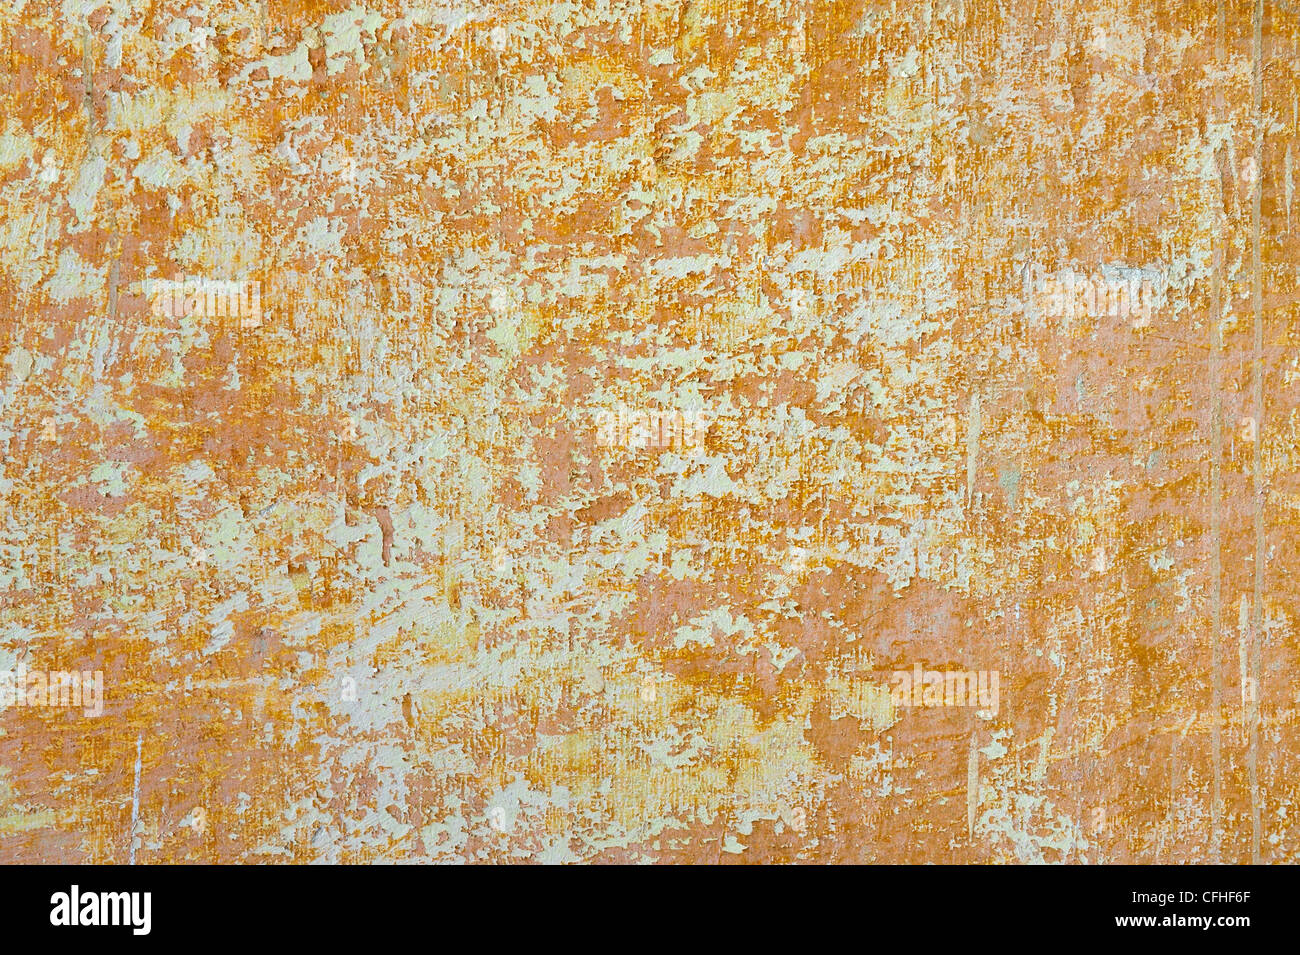 Grungy background. Old scratched orange wall. - Stock Image